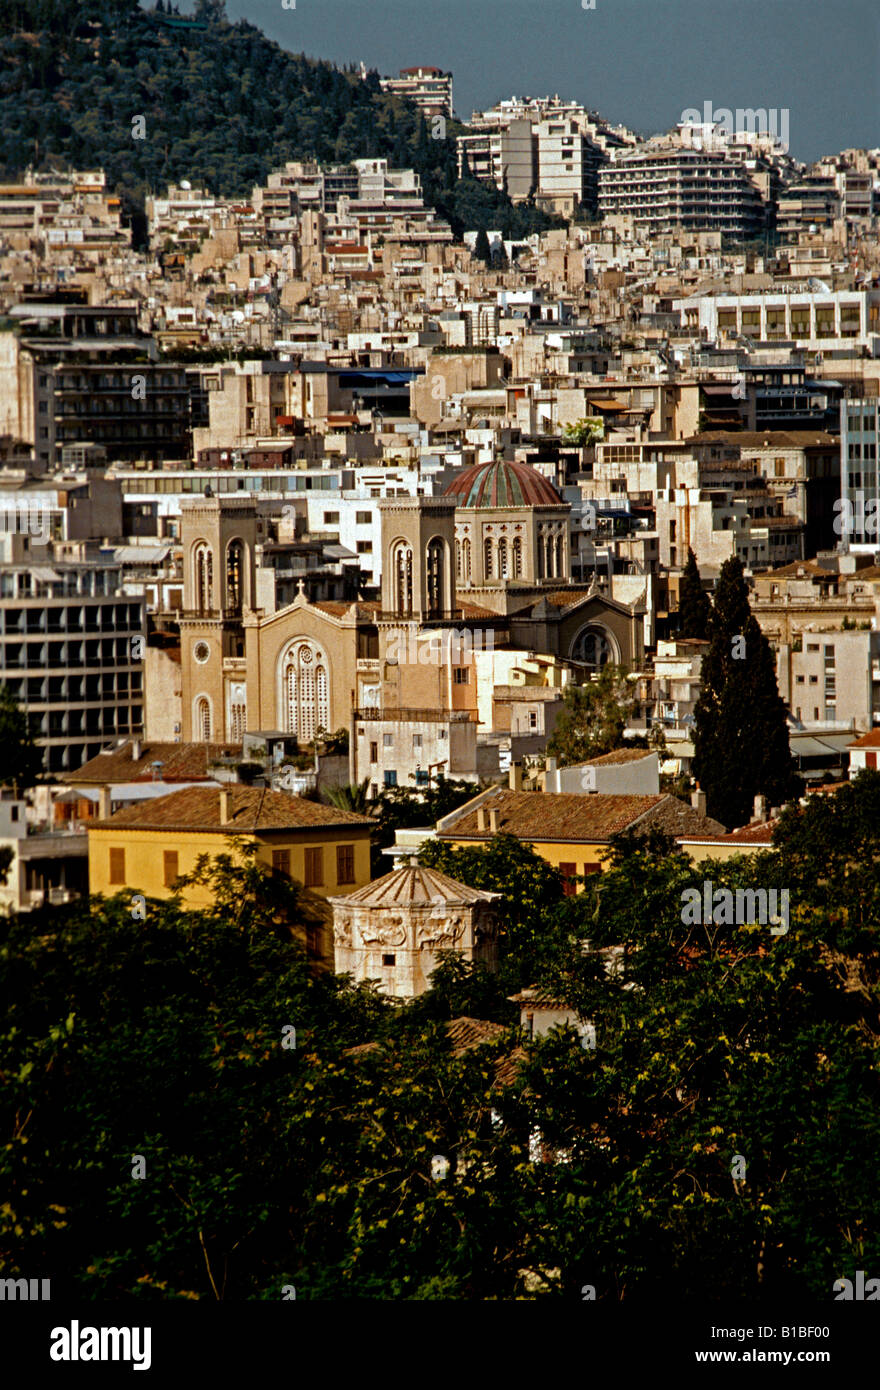 Architecture buildings structures homes houses along hill hillside Athens Attica Greece Europe - Stock Image